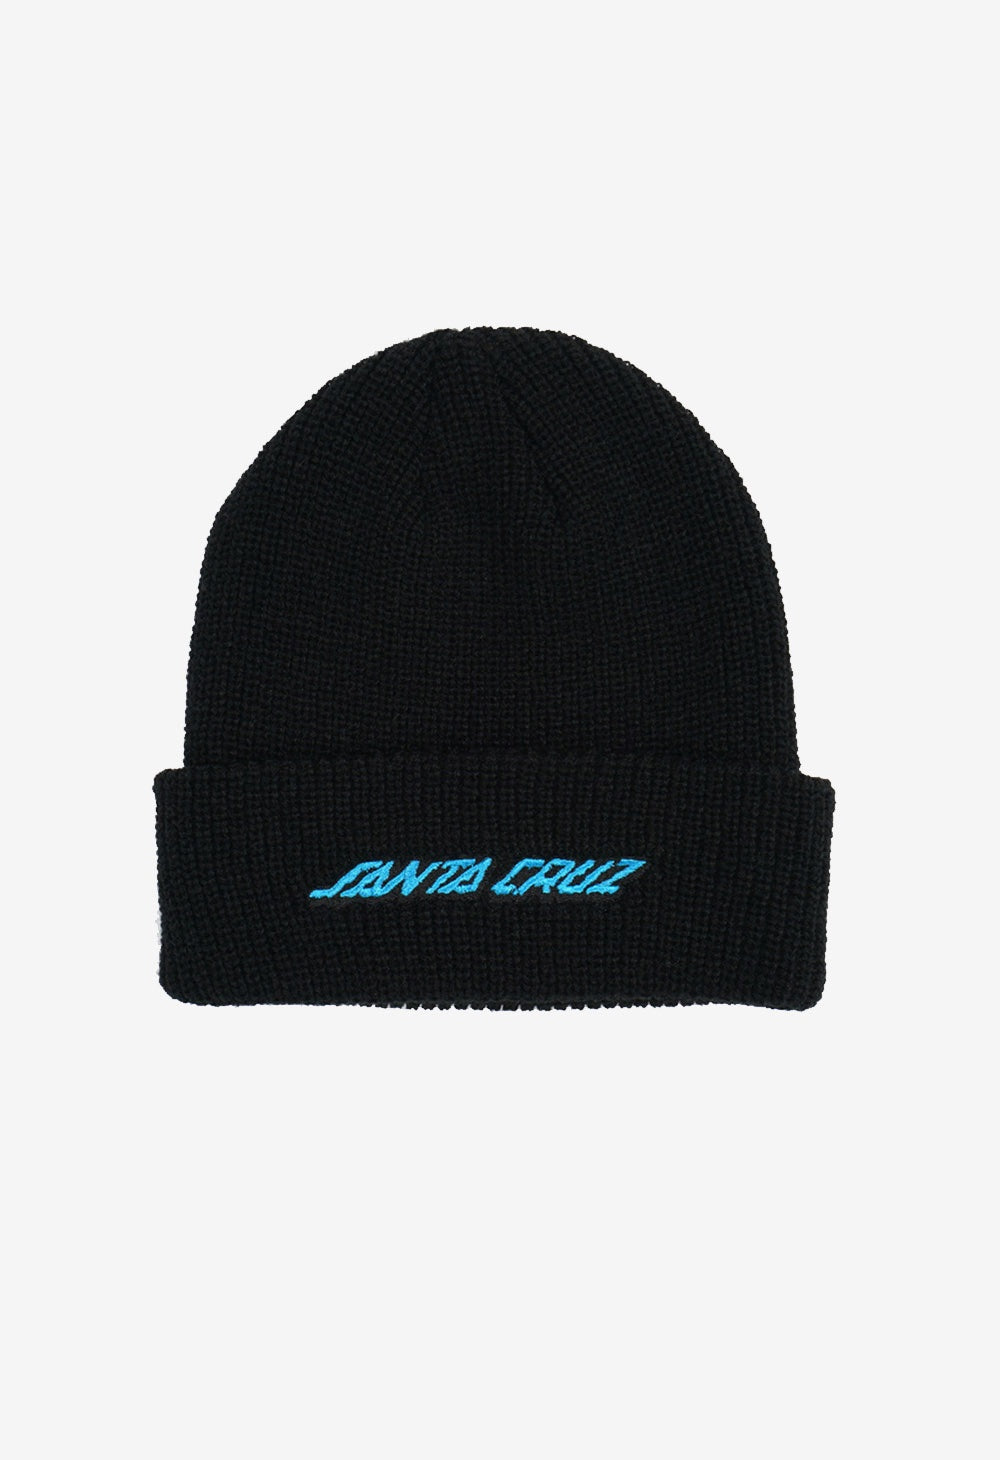 Melting Strip Youth Beanie